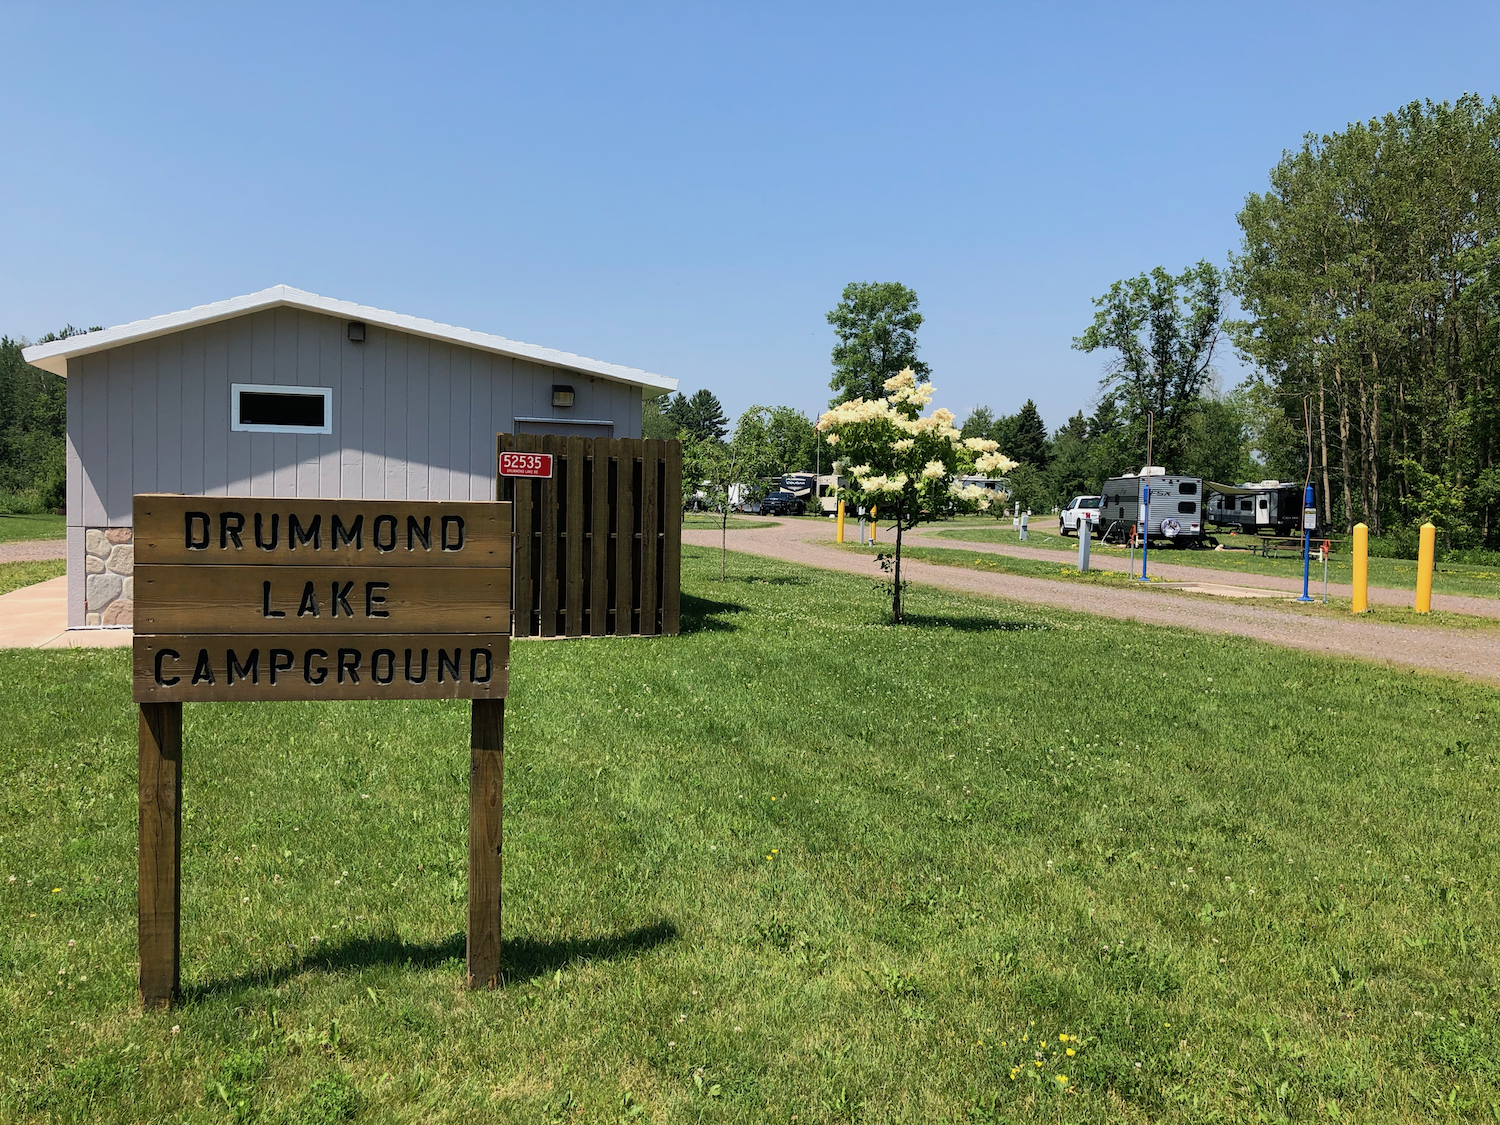 Facilities & Rates - 17 RV SITES, 2 HANDICAP-ACCESSIBLE11 full-hook-up sites, 4 are seasonal, one is a drive through6 electric only sitesSites include a picnic table and a fire pitPay station onsiteDump stationRestroom facilities, flush toiletsCoin-operated showersDaily: $28.00 for full hook-up, $22.00 for electric onlyWeekly: $168.00 for full hook-up, $132.00 for electric onlySeasonal: $1,800.00 for full hook-up, $1,500.00 for electric onlyDownload/Print Seasonal Site Lease AgreementDump Station: $5.00 per useShower: $1.75 for 5 minutes